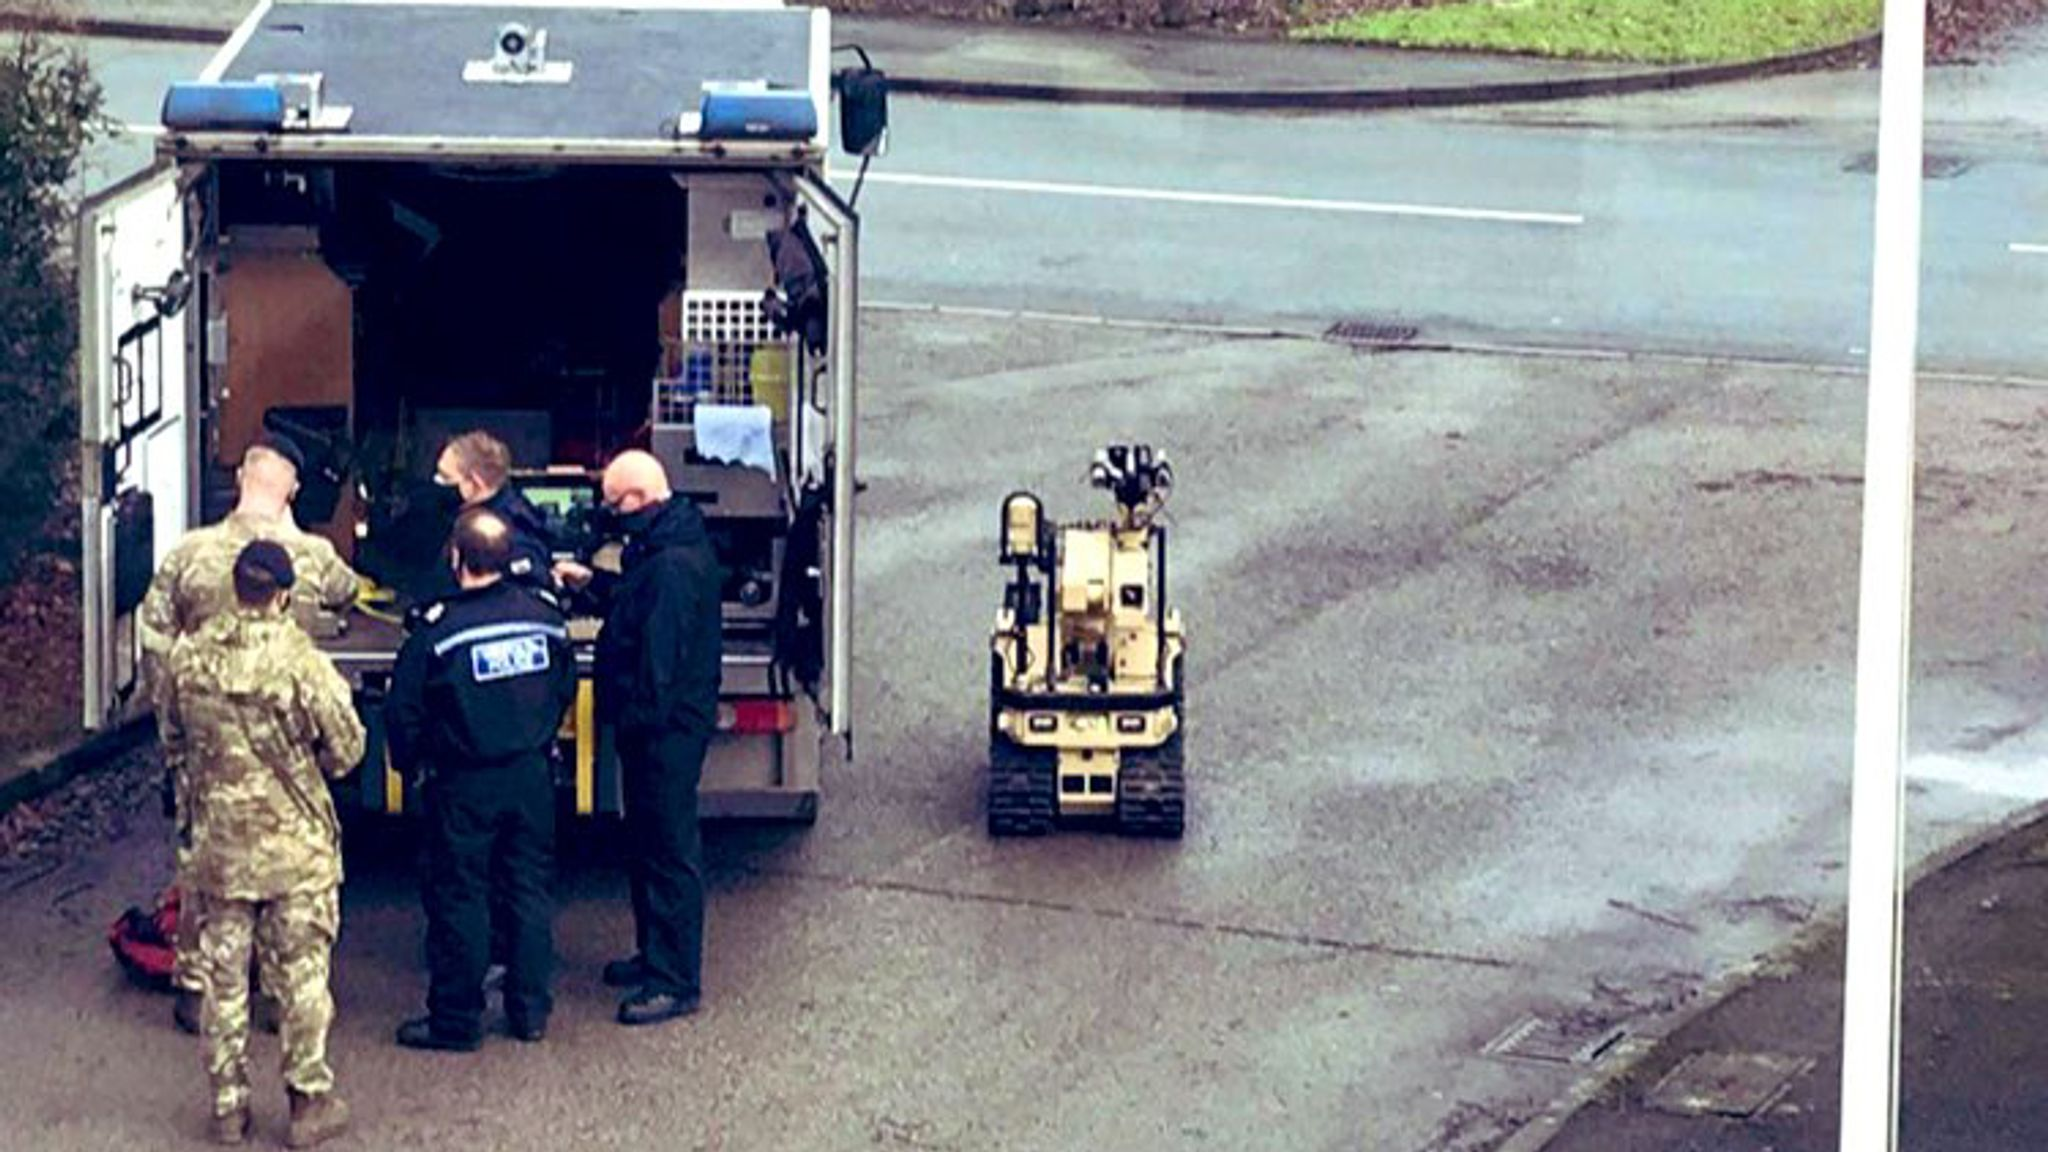 COVID-19: Bomb disposal unit called over suspicious package at Wrexham  plant linked to vaccine | UK News | Sky News